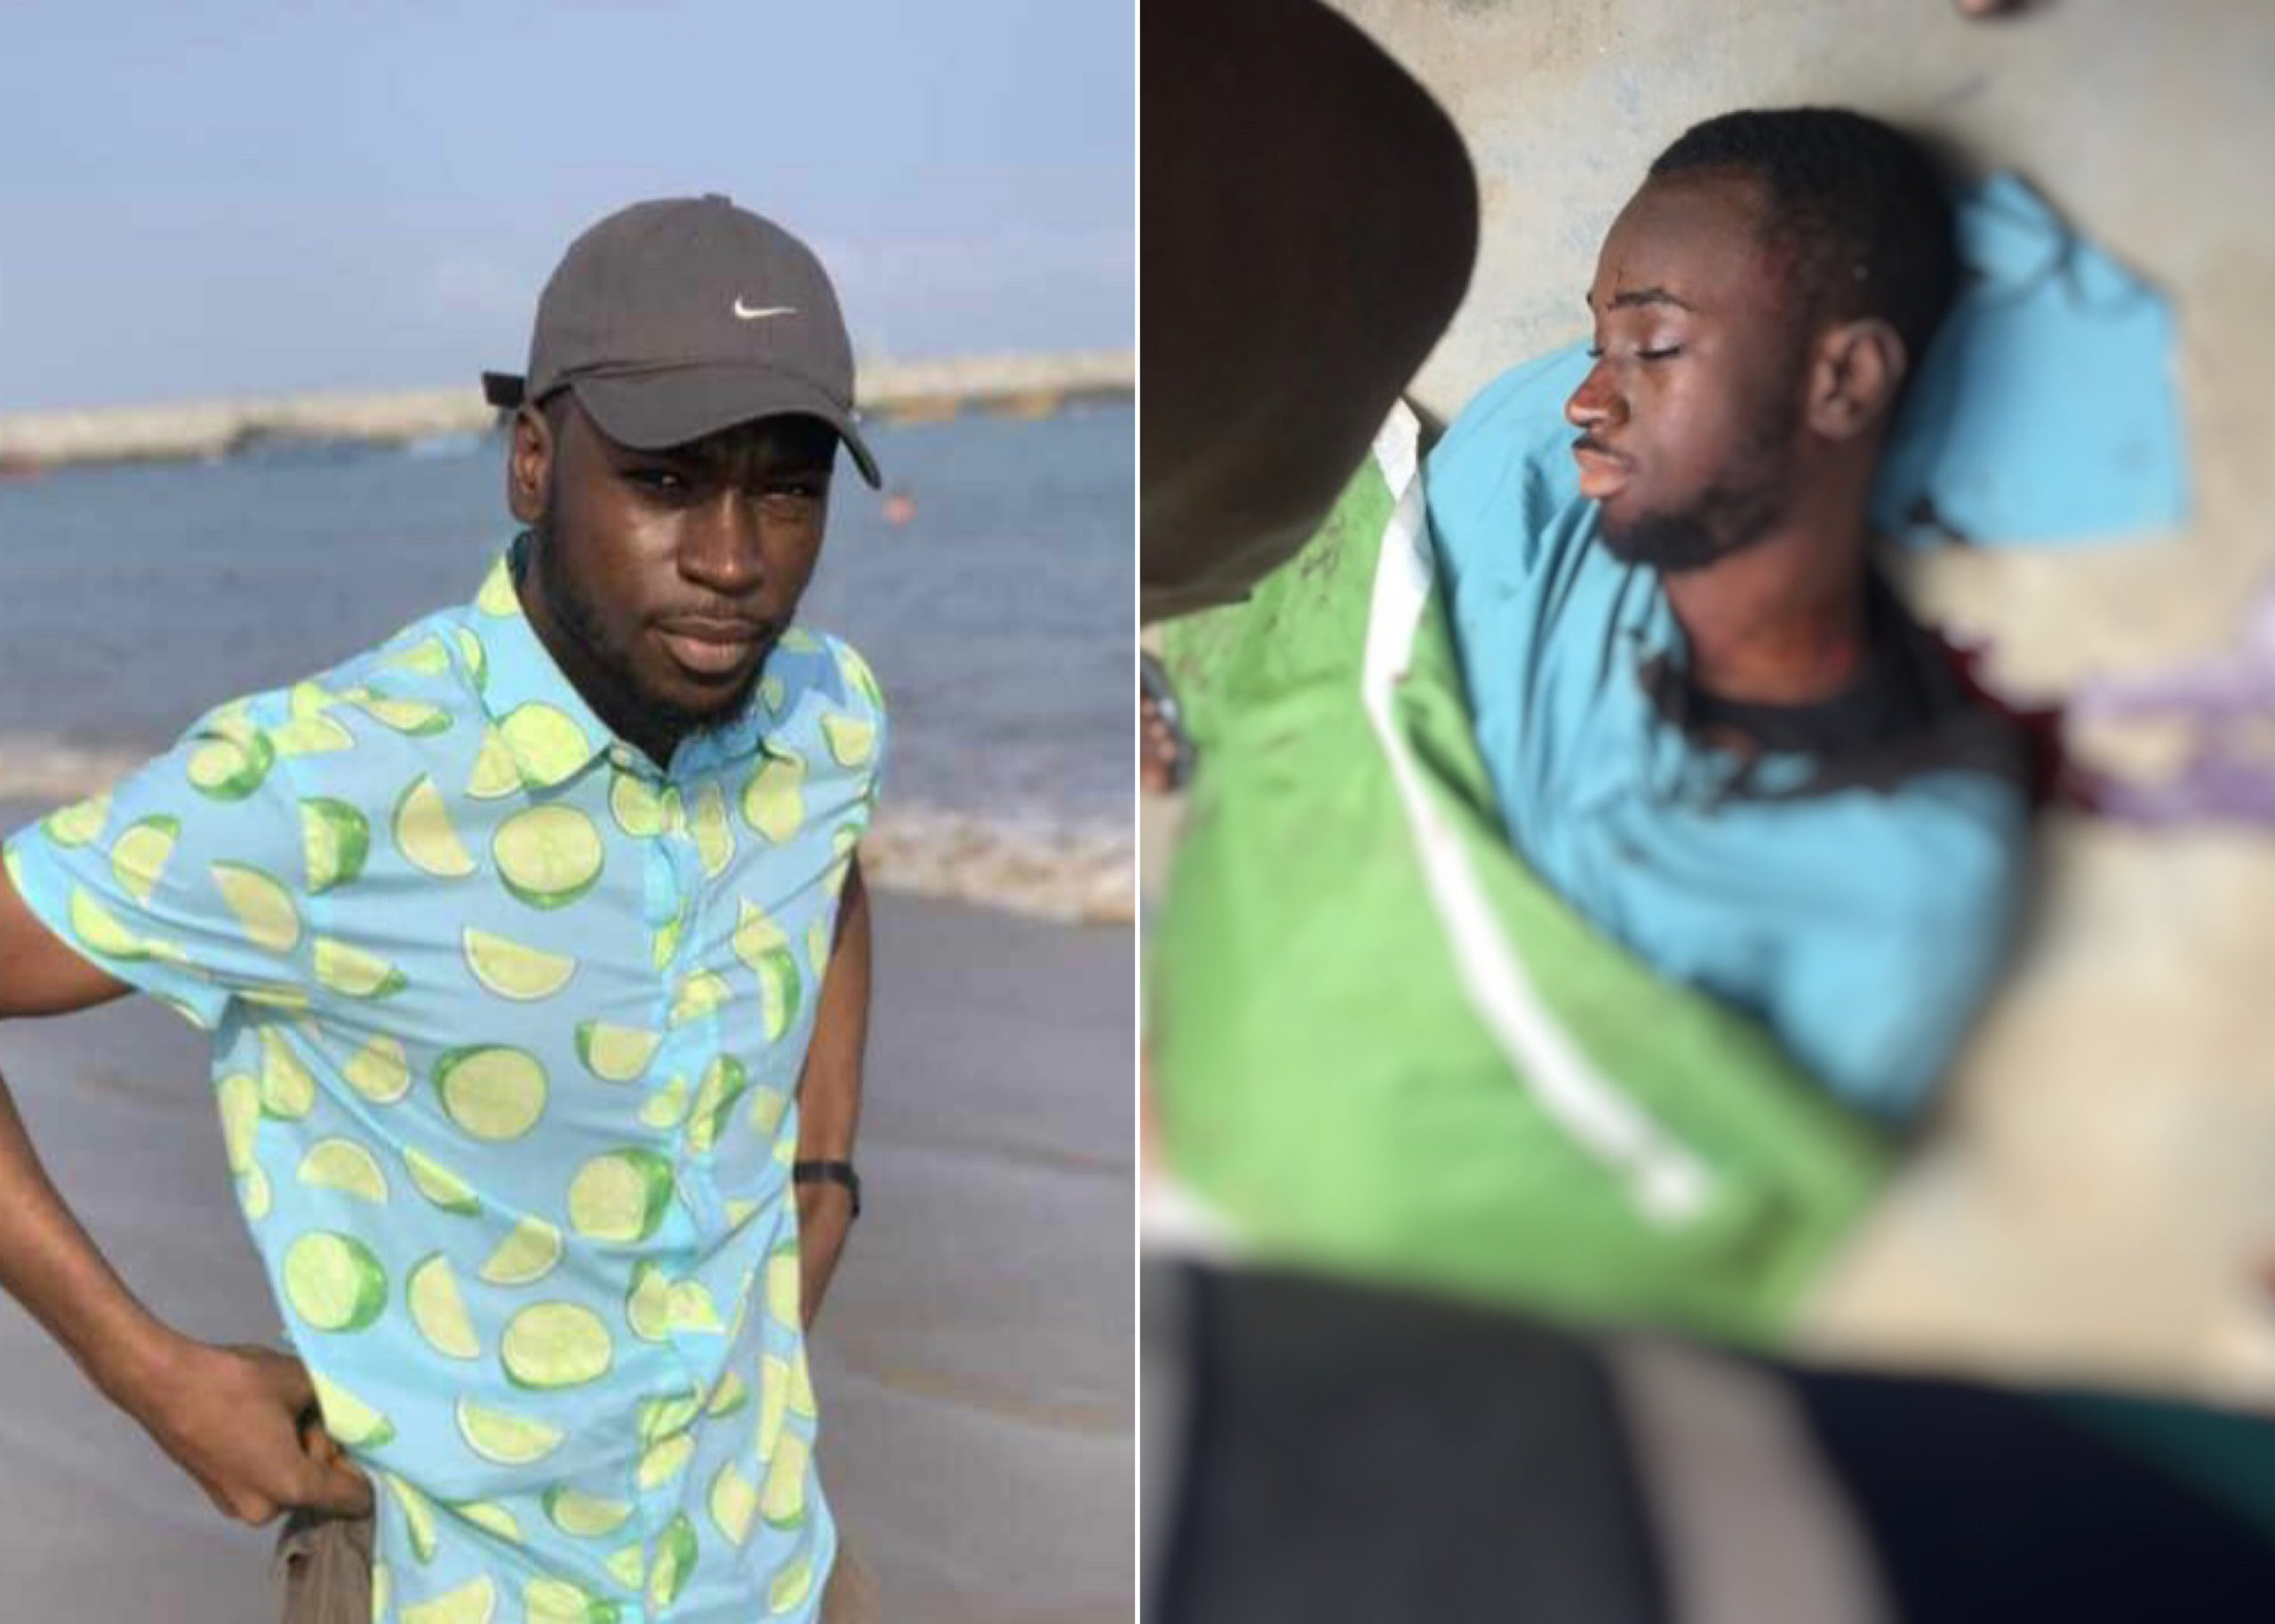 RIP Oke: Young Man Shot Dead 3 Hours After Tweeting 'Nigeria Will Not End Me'